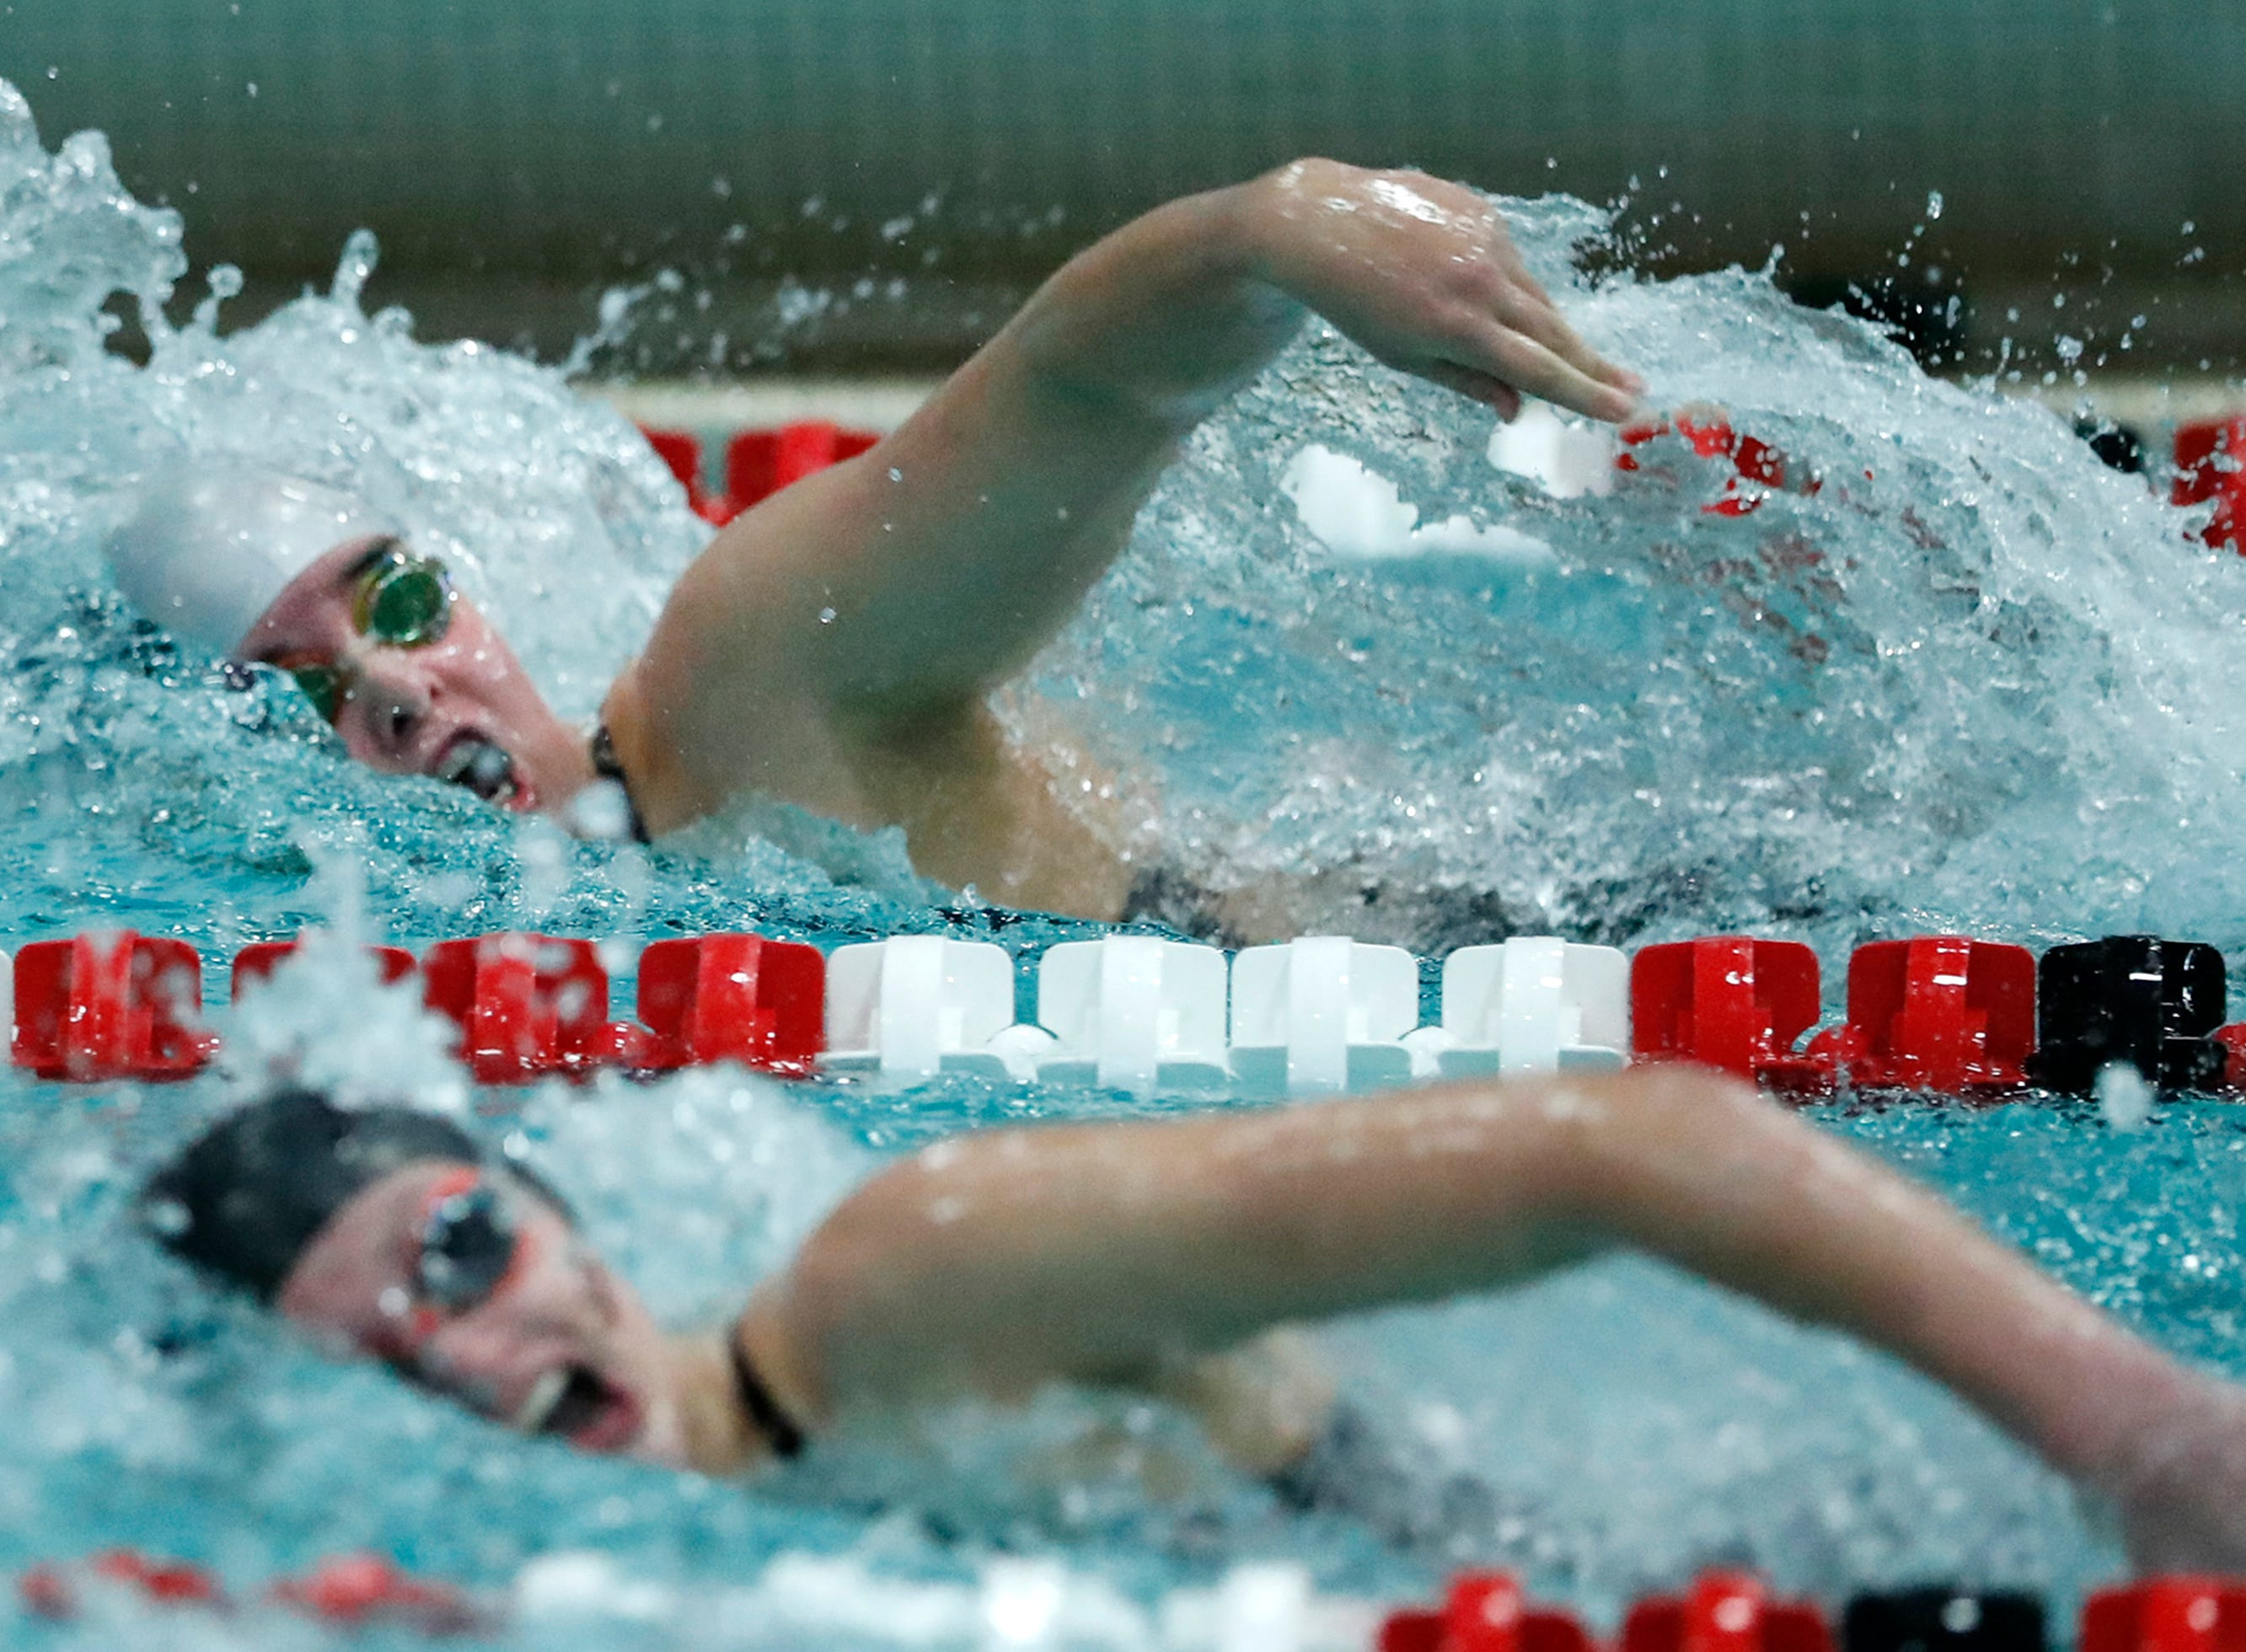 Merrill's Claire Schultz races in the 100 yard freestyle during the WIAA Division 2 State Swimming and Diving meet Friday, Nov. 9, 2018, at the UW Natatorium in Madison, Wis.